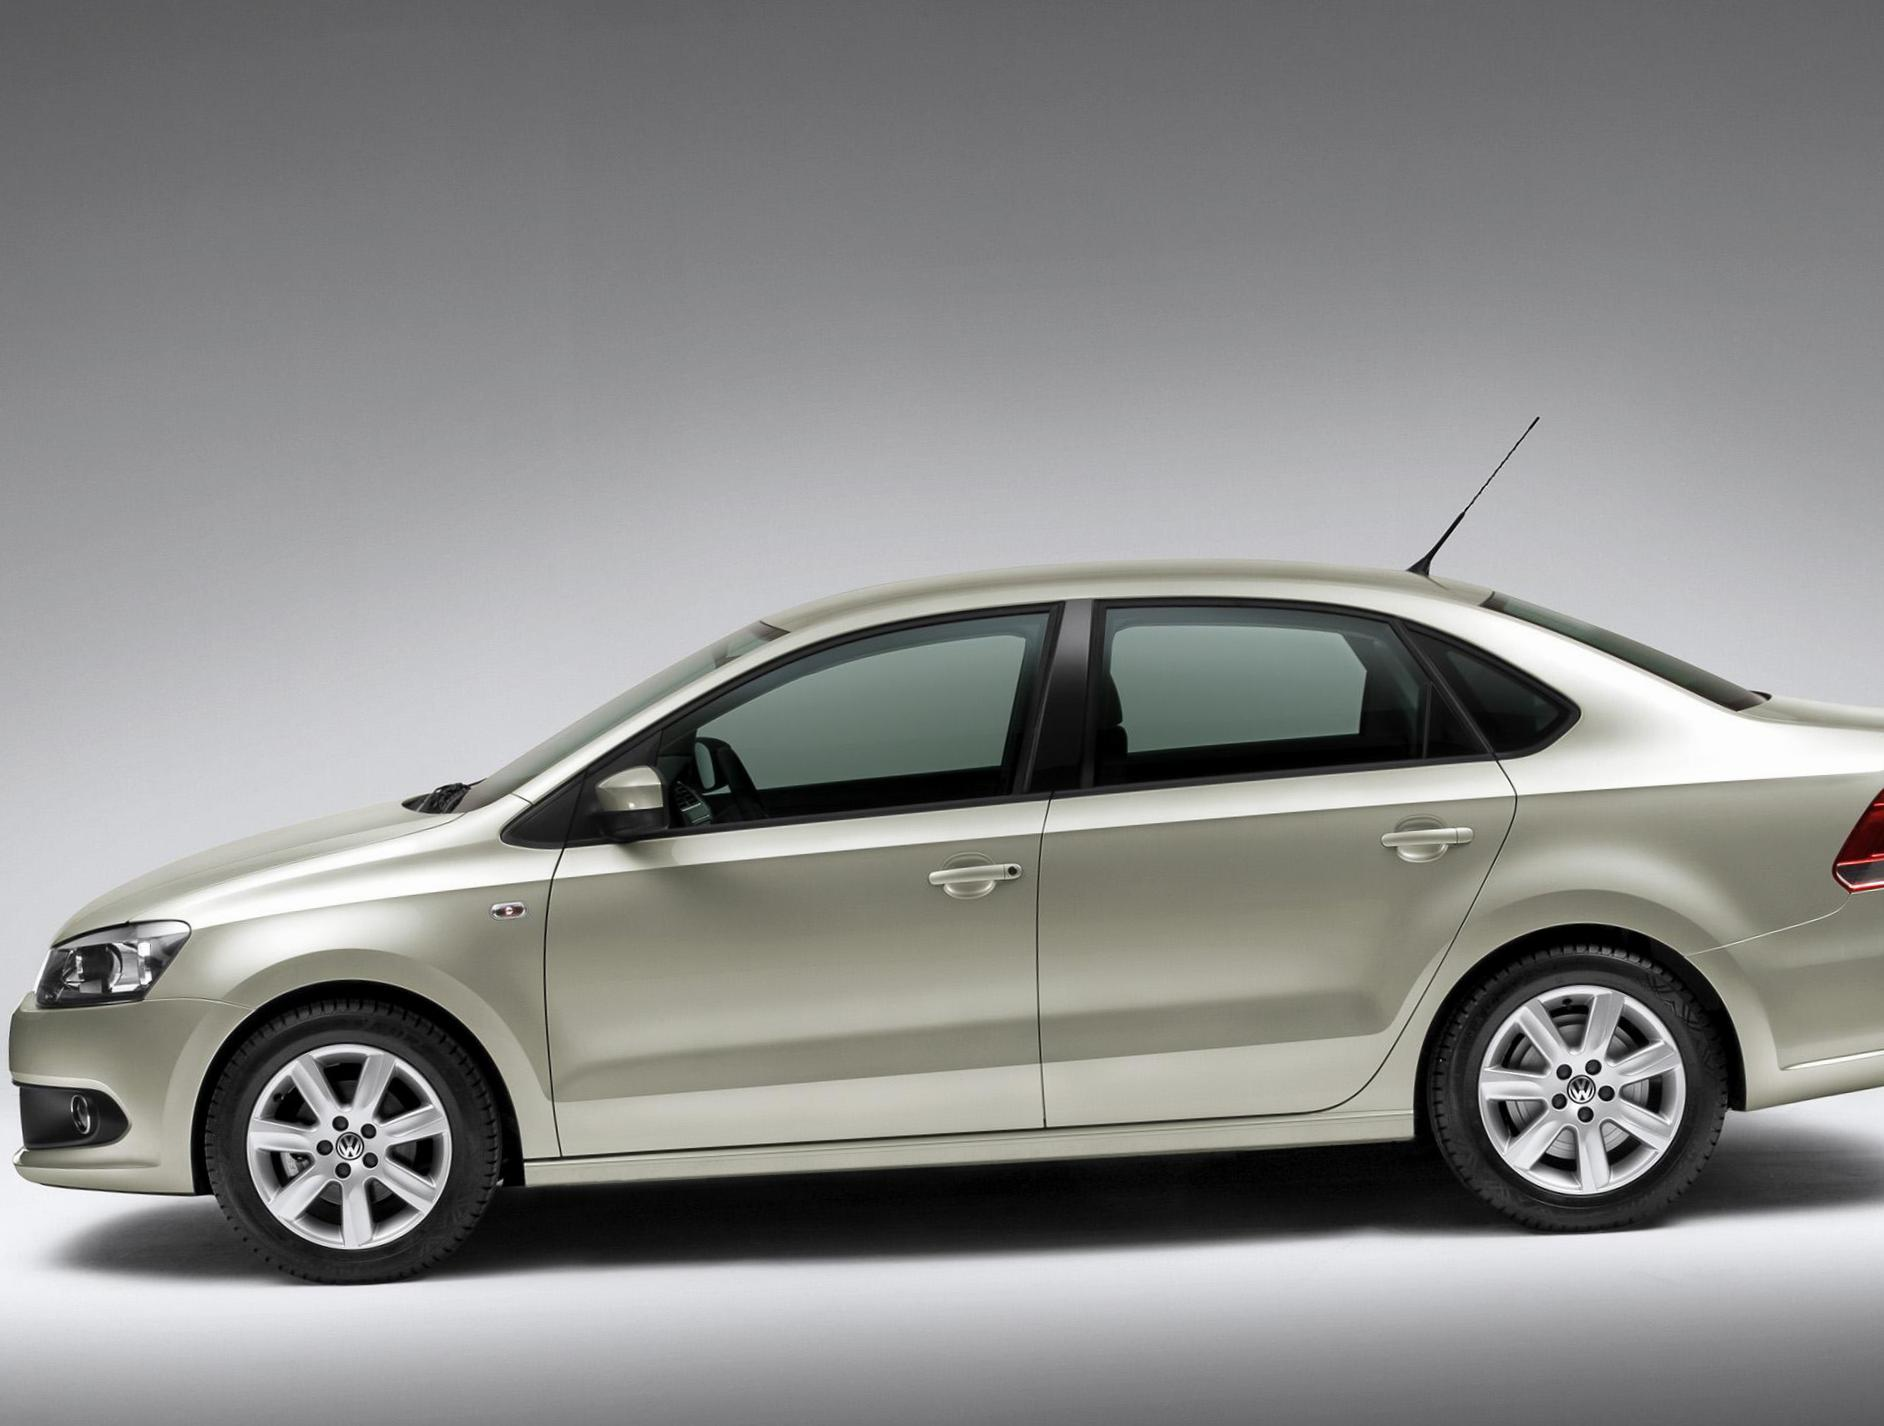 Volkswagen Polo Sedan new suv